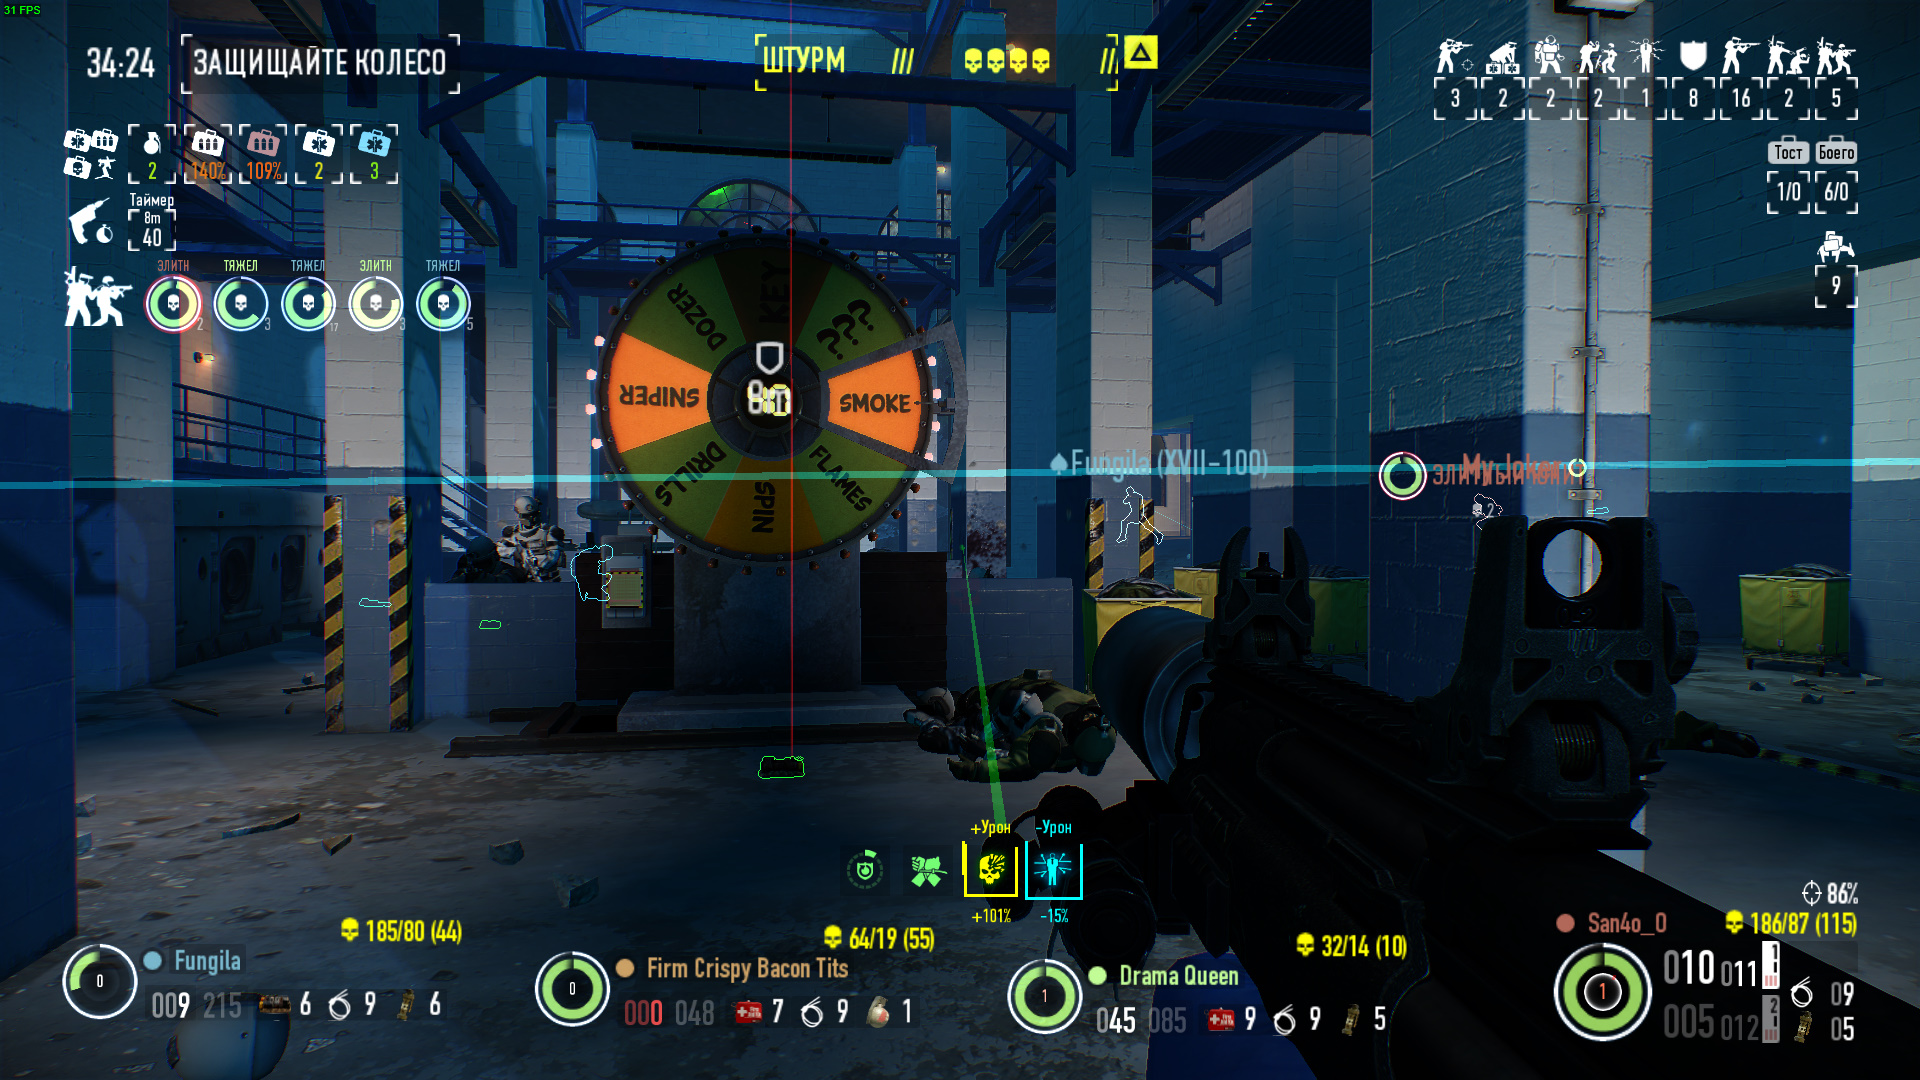 payday2_win32_release 2016-11-06 01-37-00-995.jpg - Payday 2